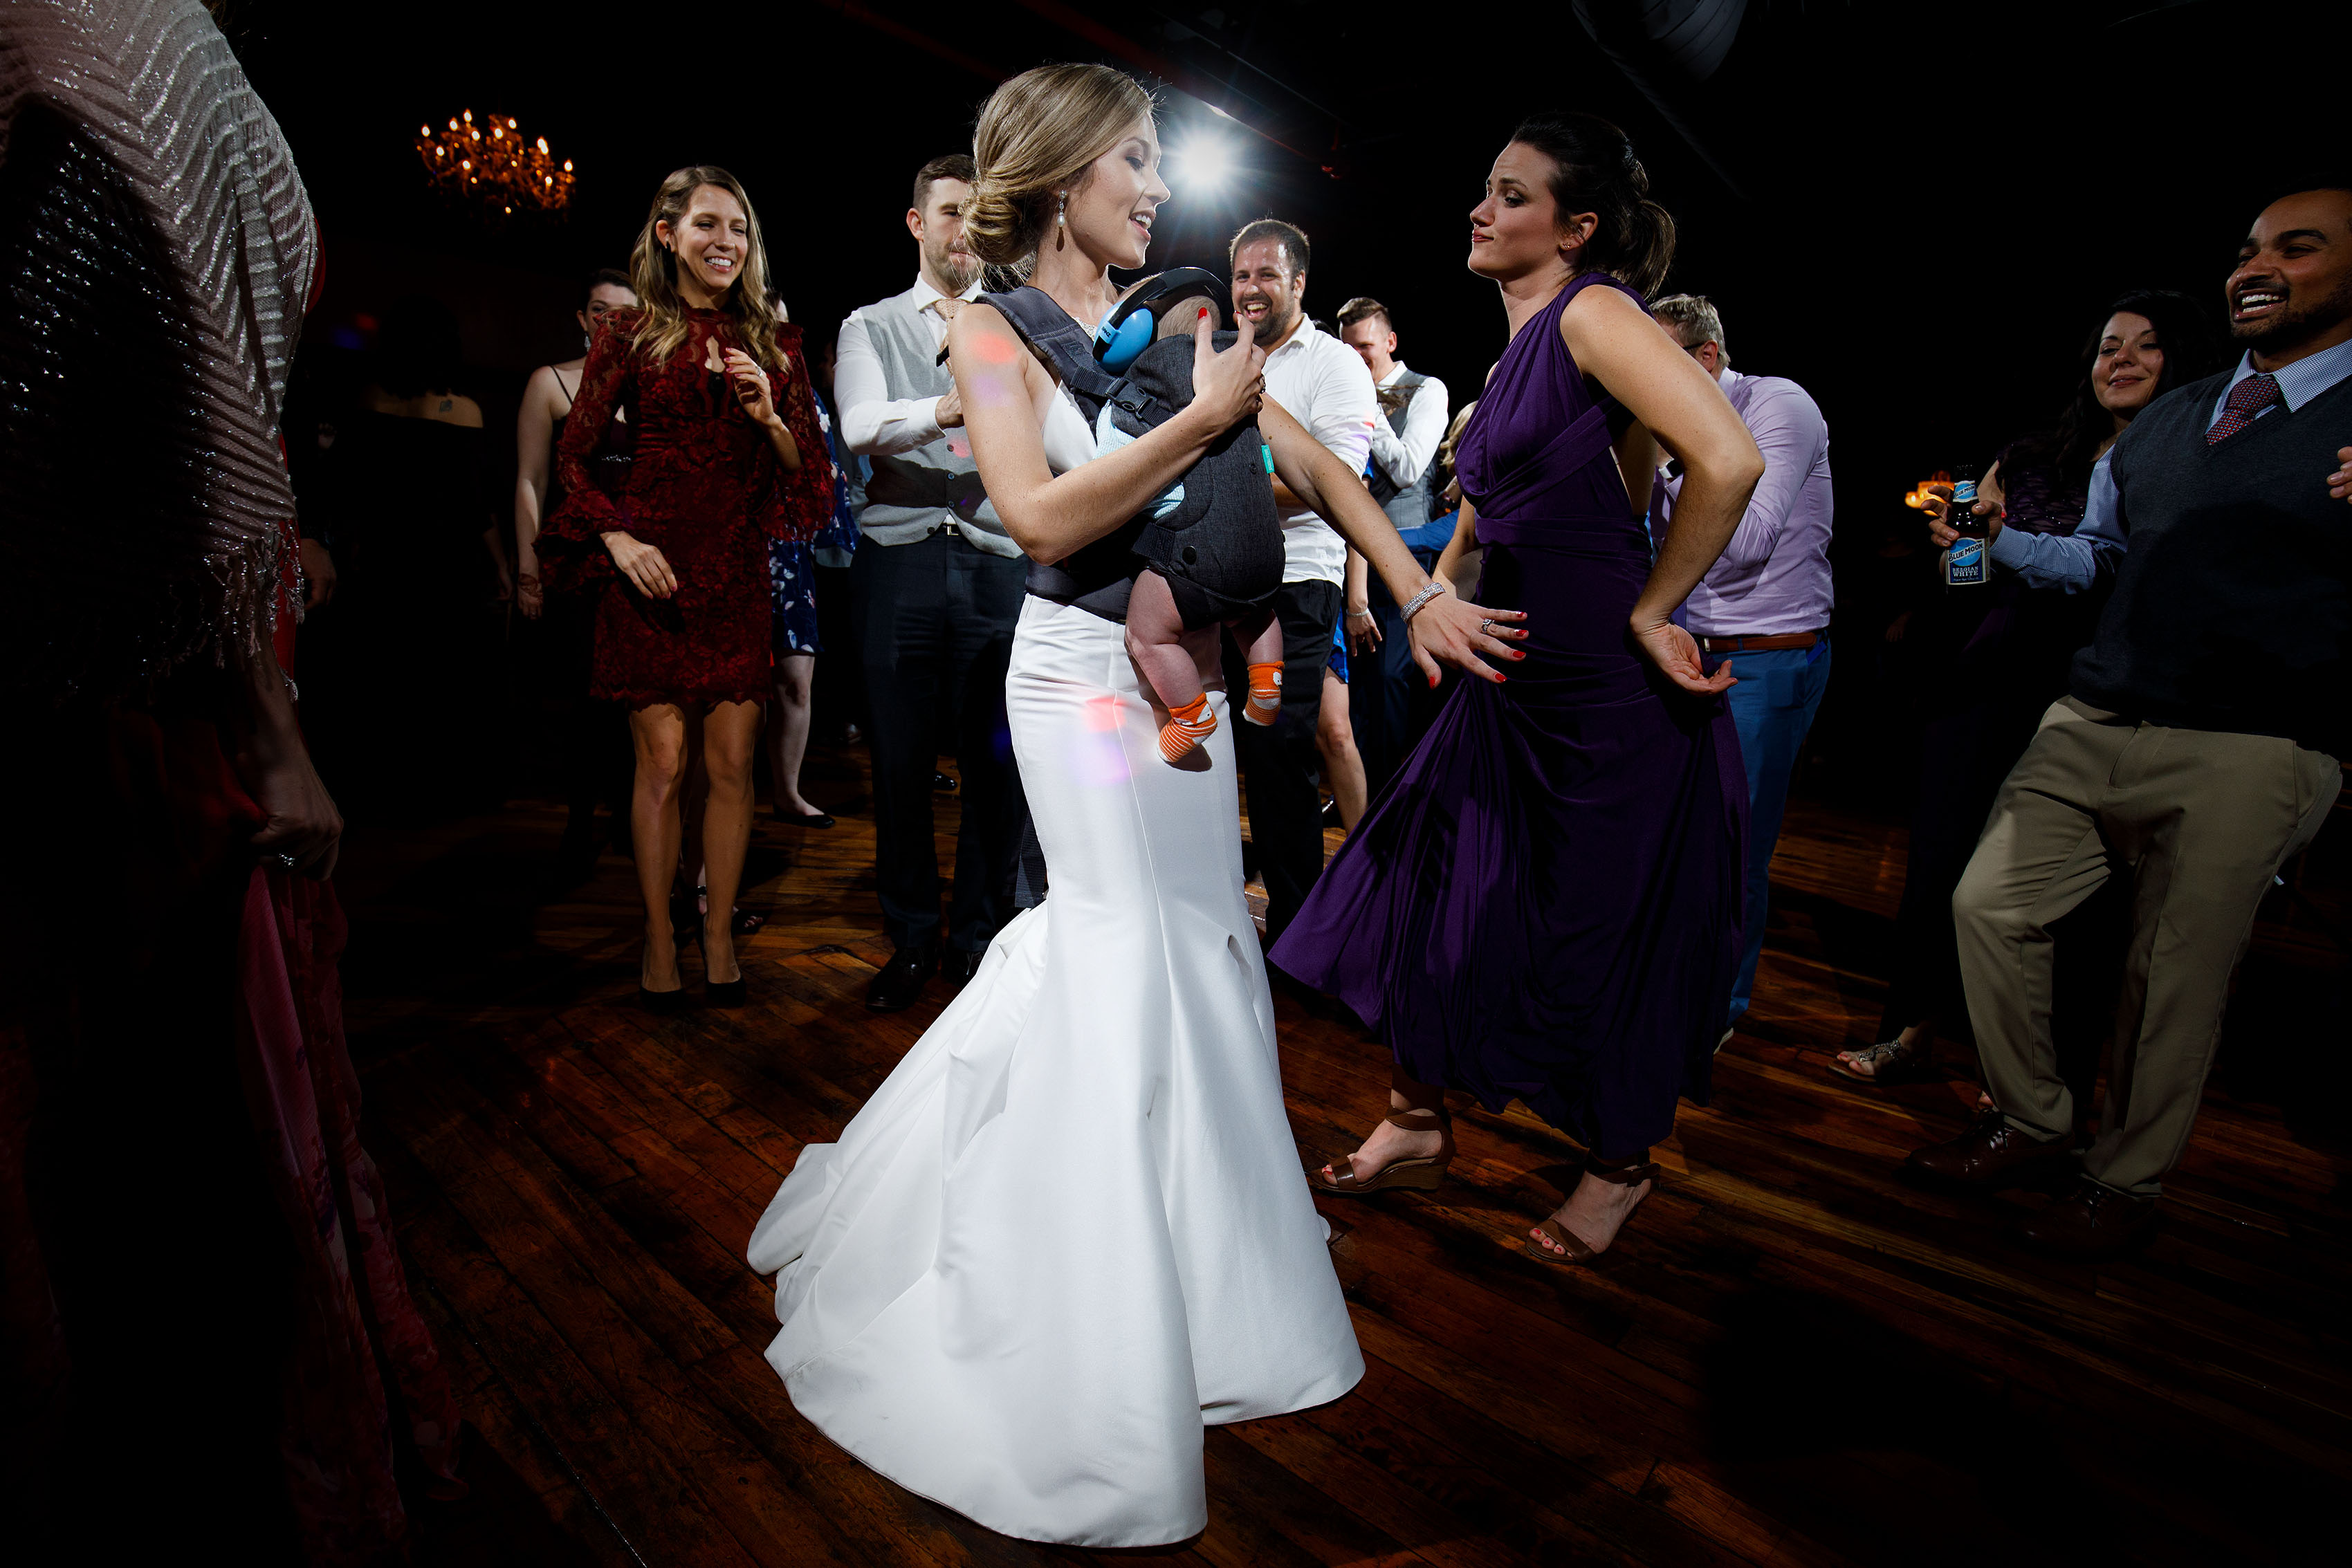 The bride dances with a newborn during her Madison at the Mill wedding